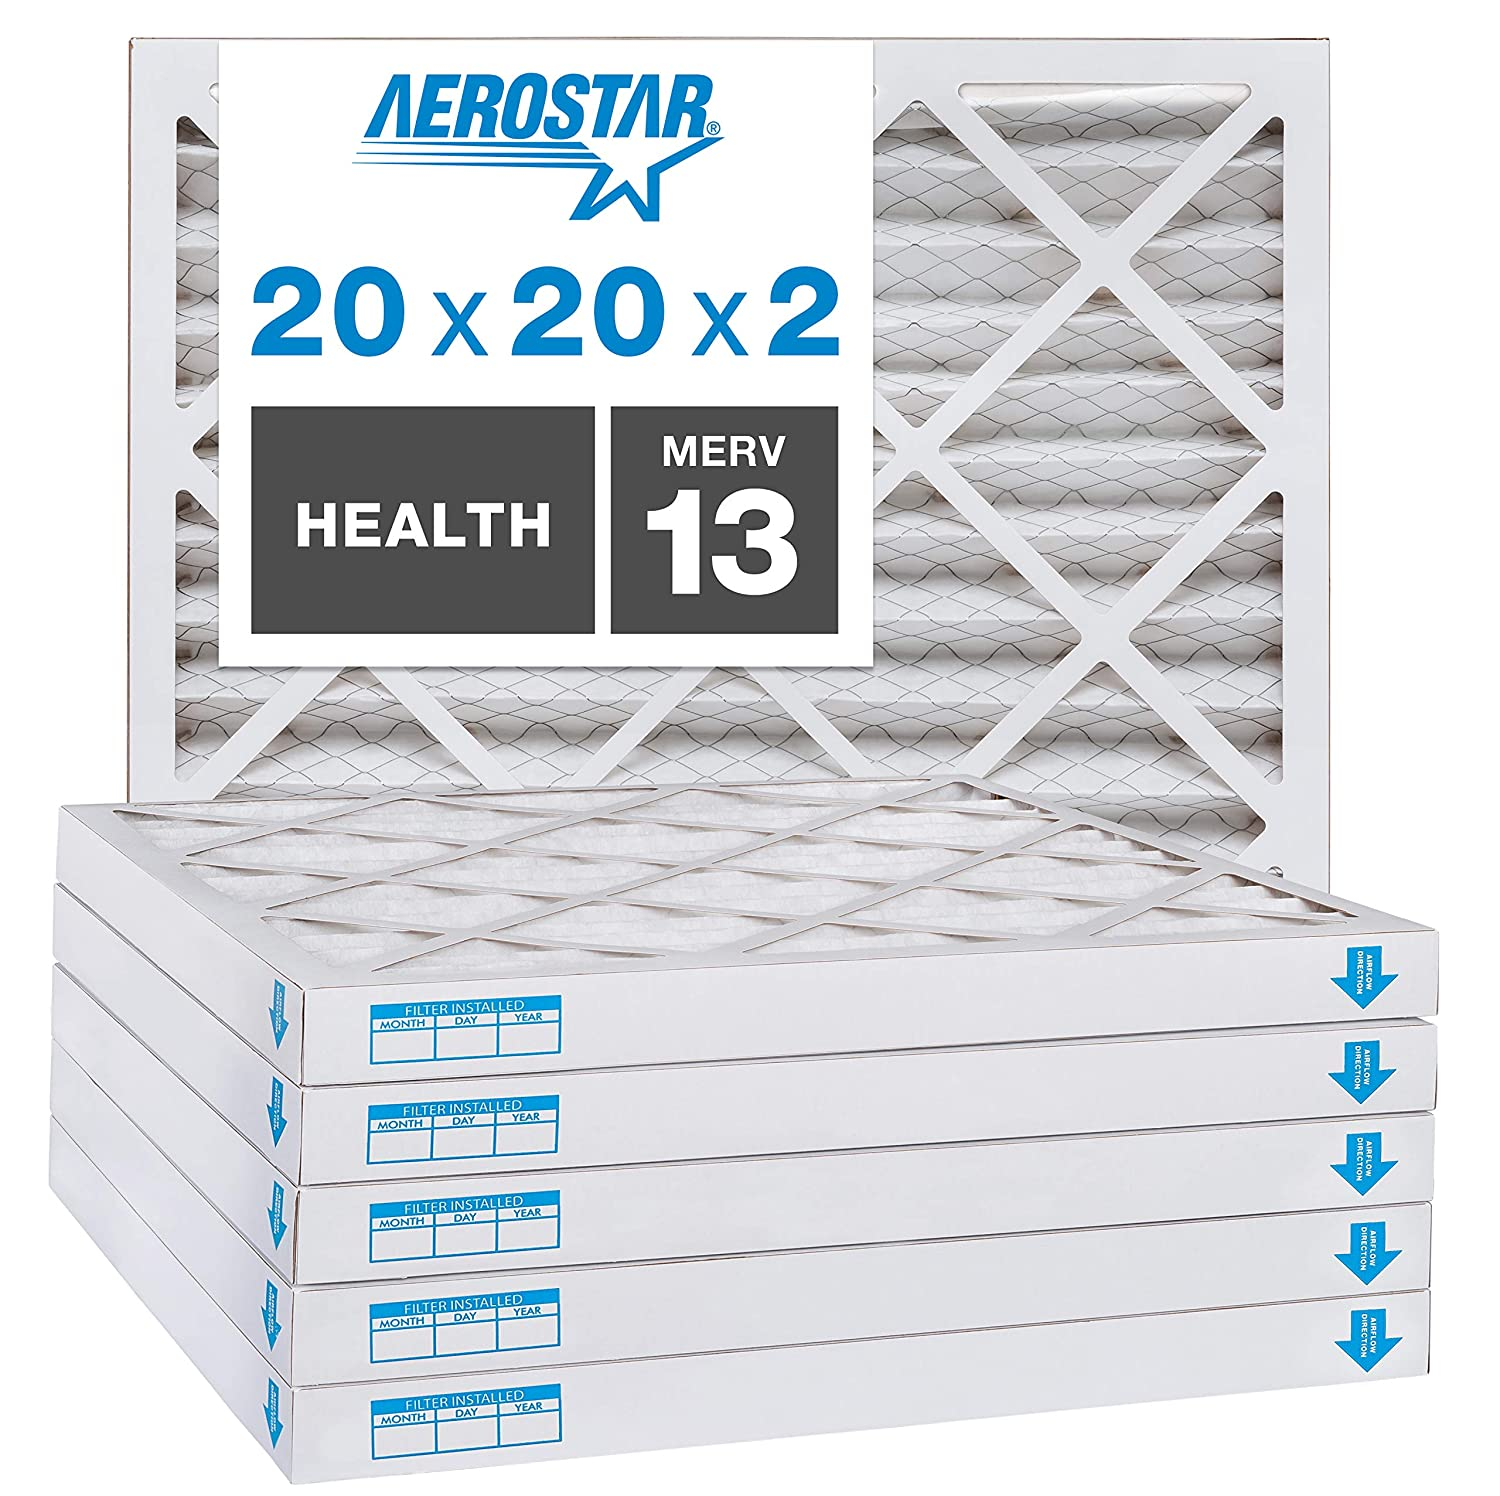 Aerostar Home Max 20x20x2 MERV 13 Pleated Air Filter, Made in the USA, 6-Pack